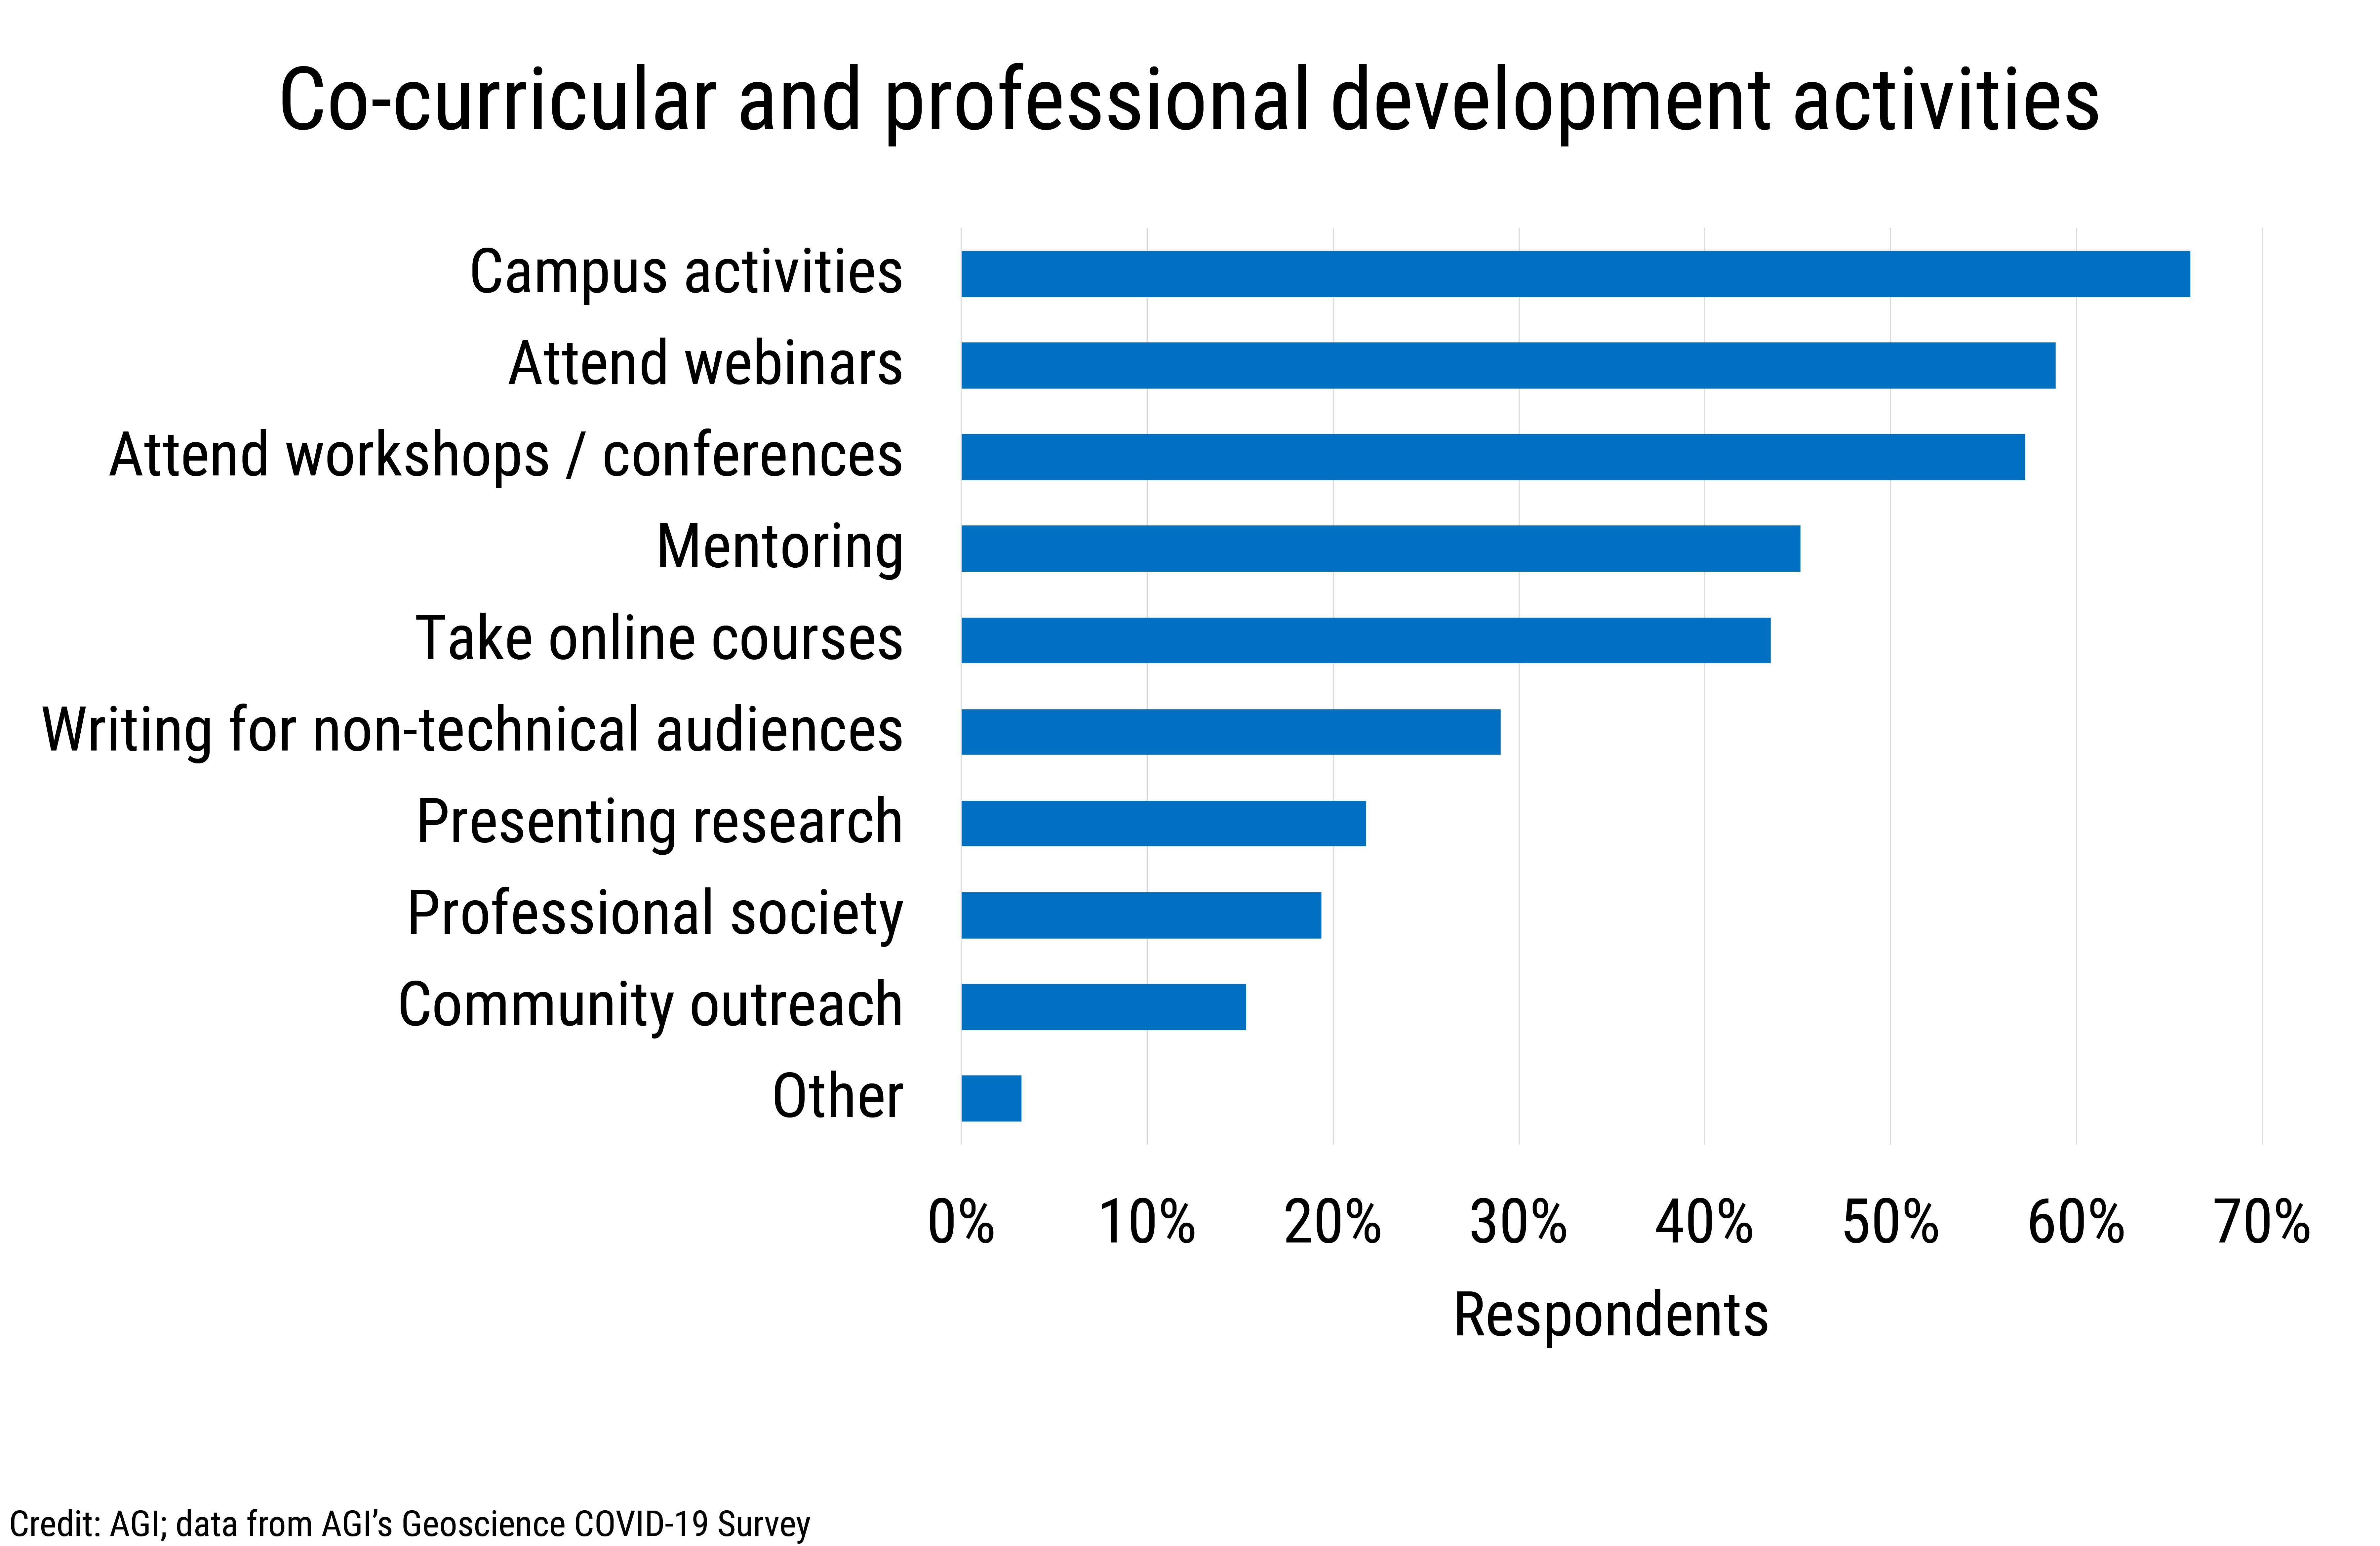 DB_2020-032 chart 05: Co-curricular and professional development activities (Credit: AGI; data from AGI's Geoscience COVID-19 Survey)